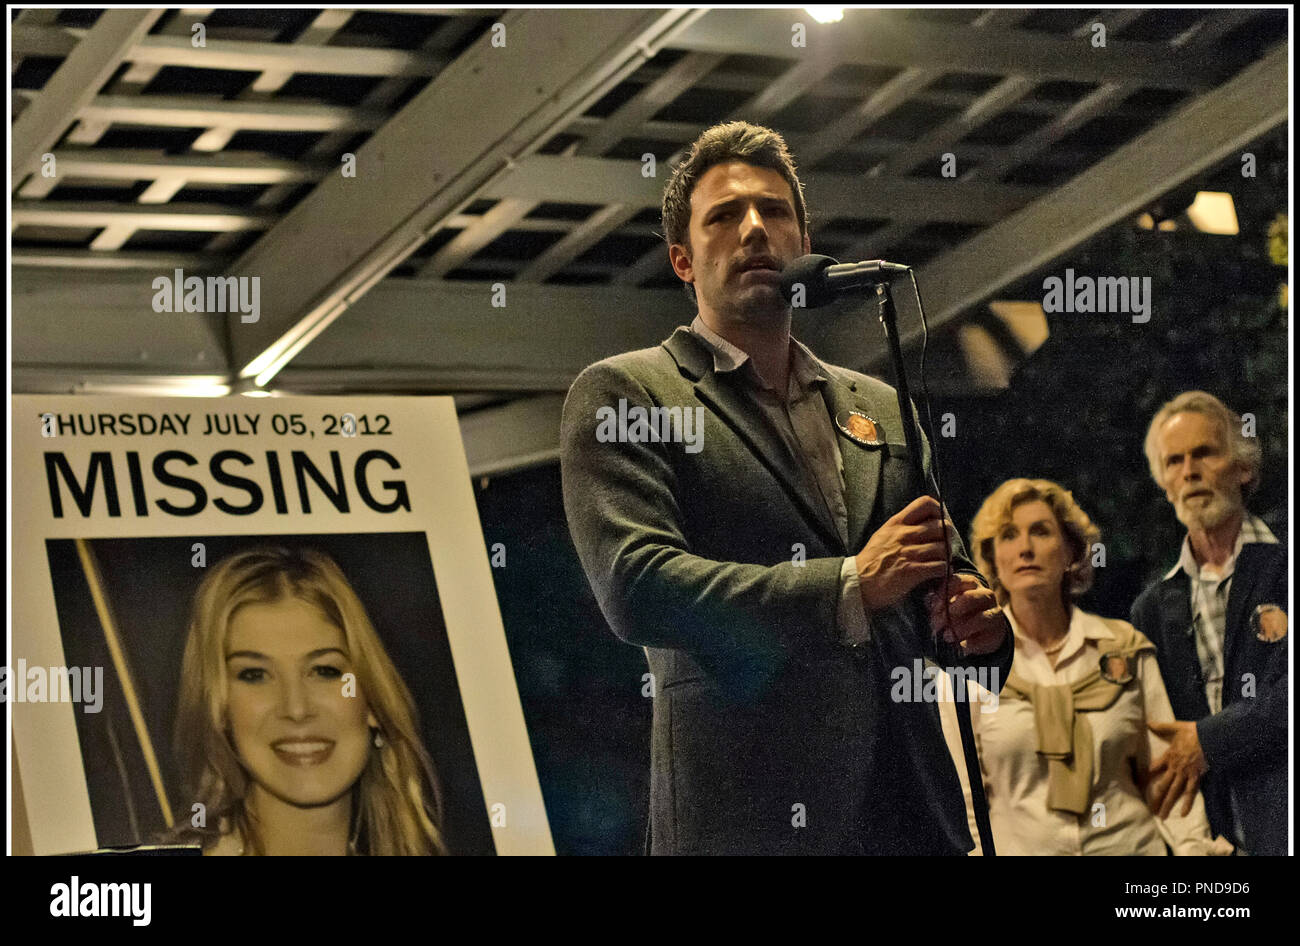 Prod DB © 20th Century Fox - New Regency Pictures - Pacific Standard / DR GONE GIRL de David Fincher 2014 USA avec Rosamund Pike (sur l'affiche) et Ben Affleck avis de recherche d'apres le roman de Gillian Flynn - Stock Image